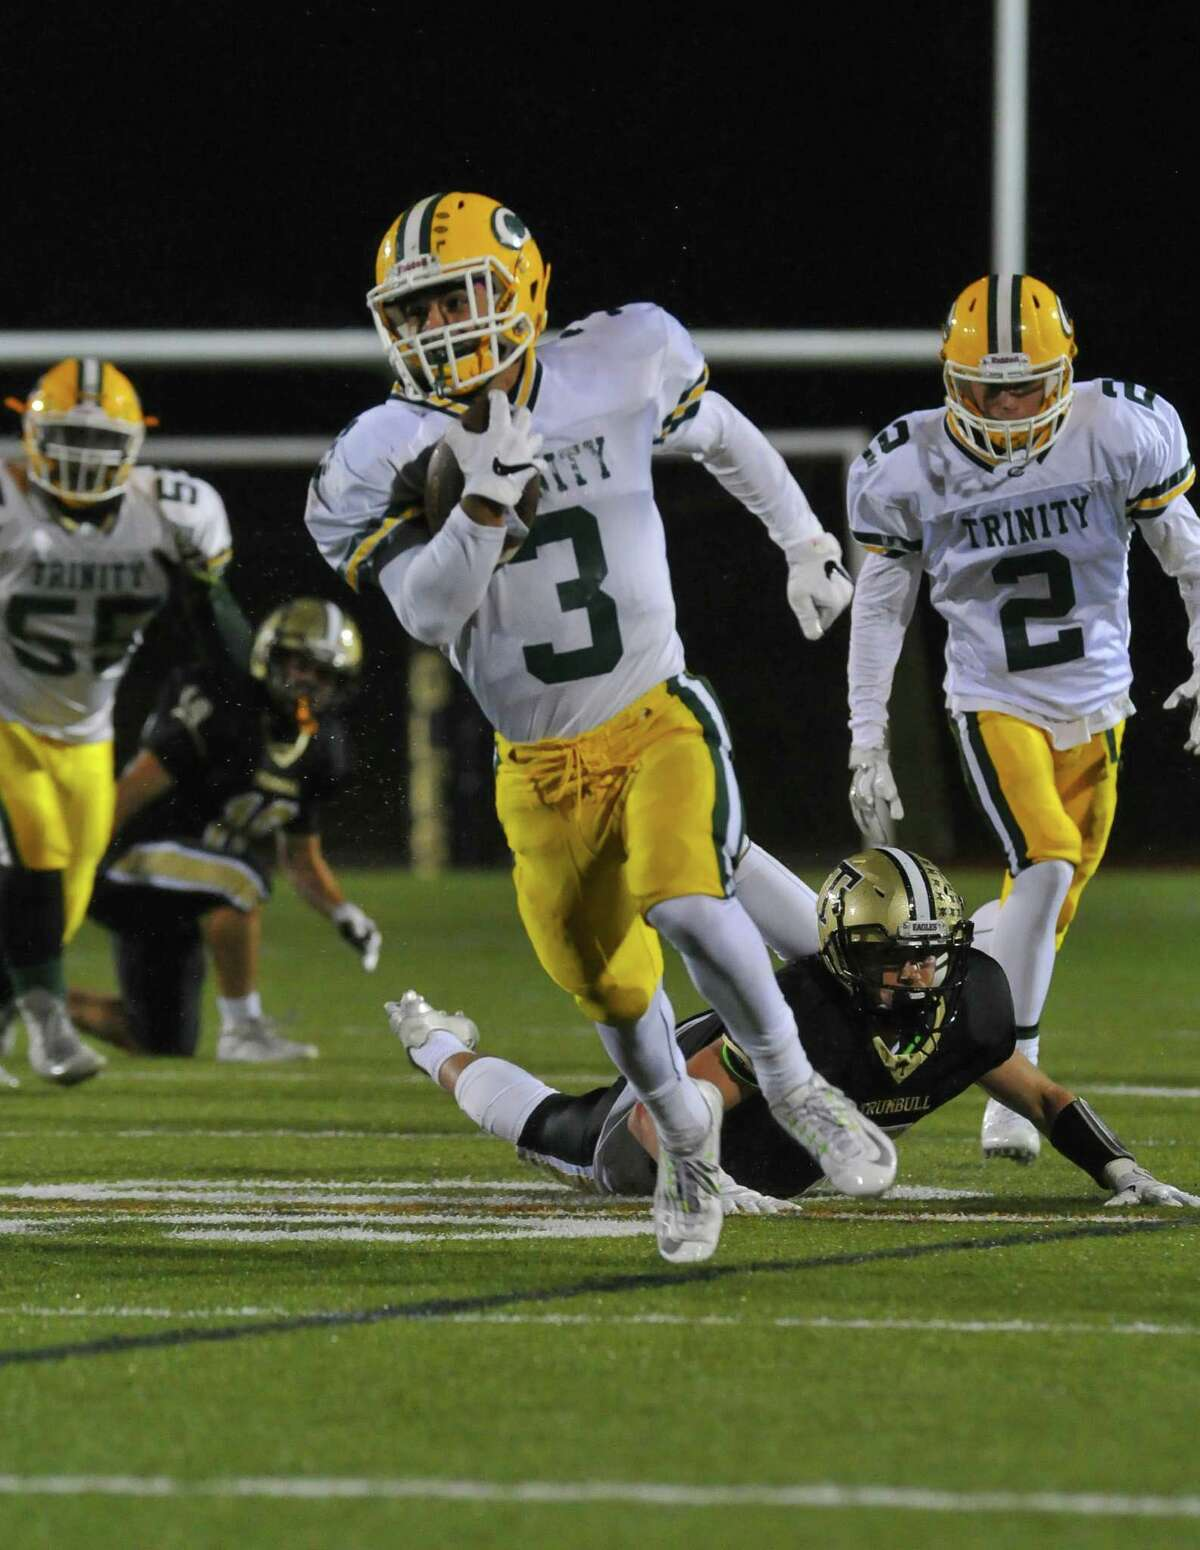 Jonmichael Bivona (3) of the Trinity Catholic Crusaders carries the ball up field during a game against the Trumbull Eagles on September 30, 2016 at Trumbull High School in Trumbull, Connecticut.